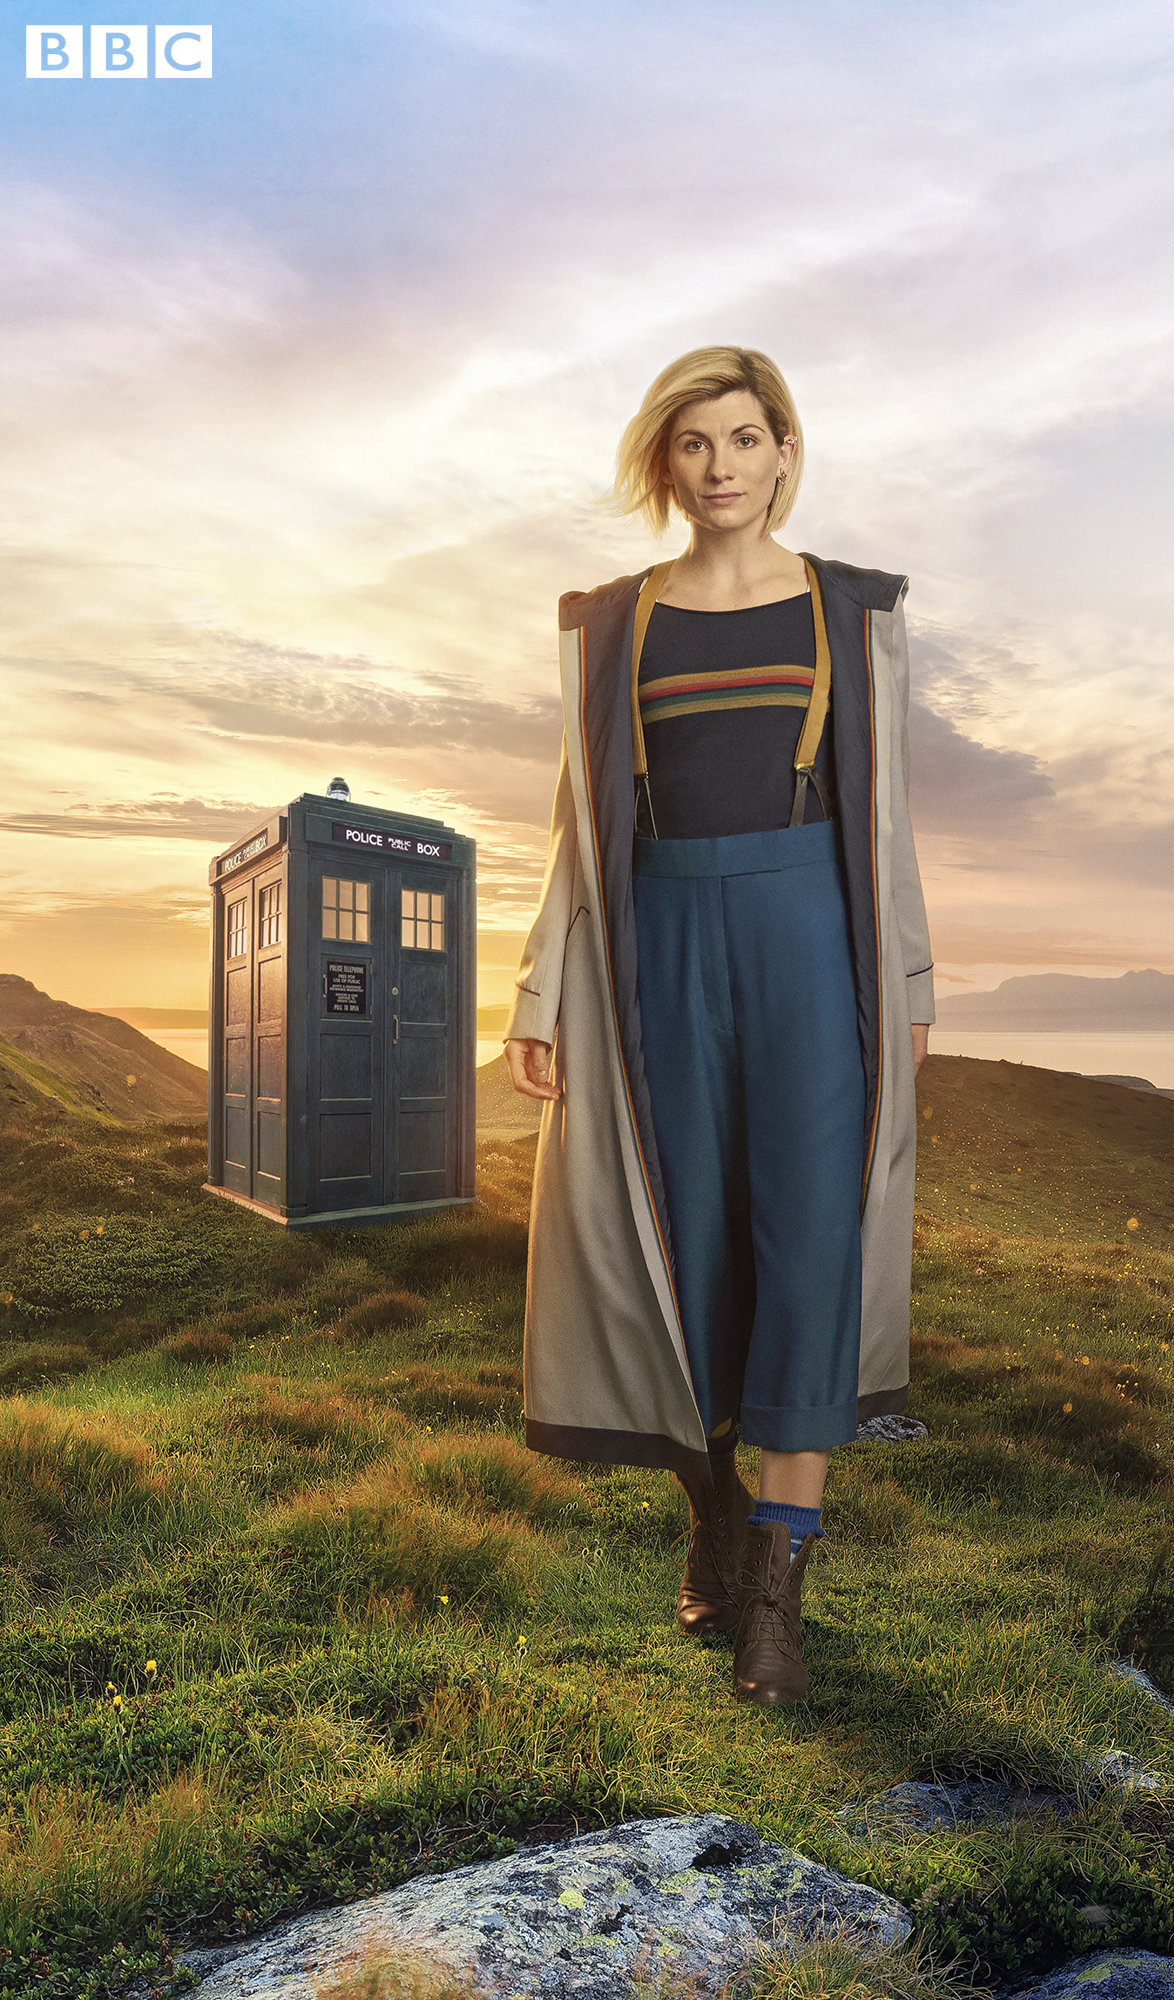 New Doctor Who Costume and TARDIS Exterior revealed